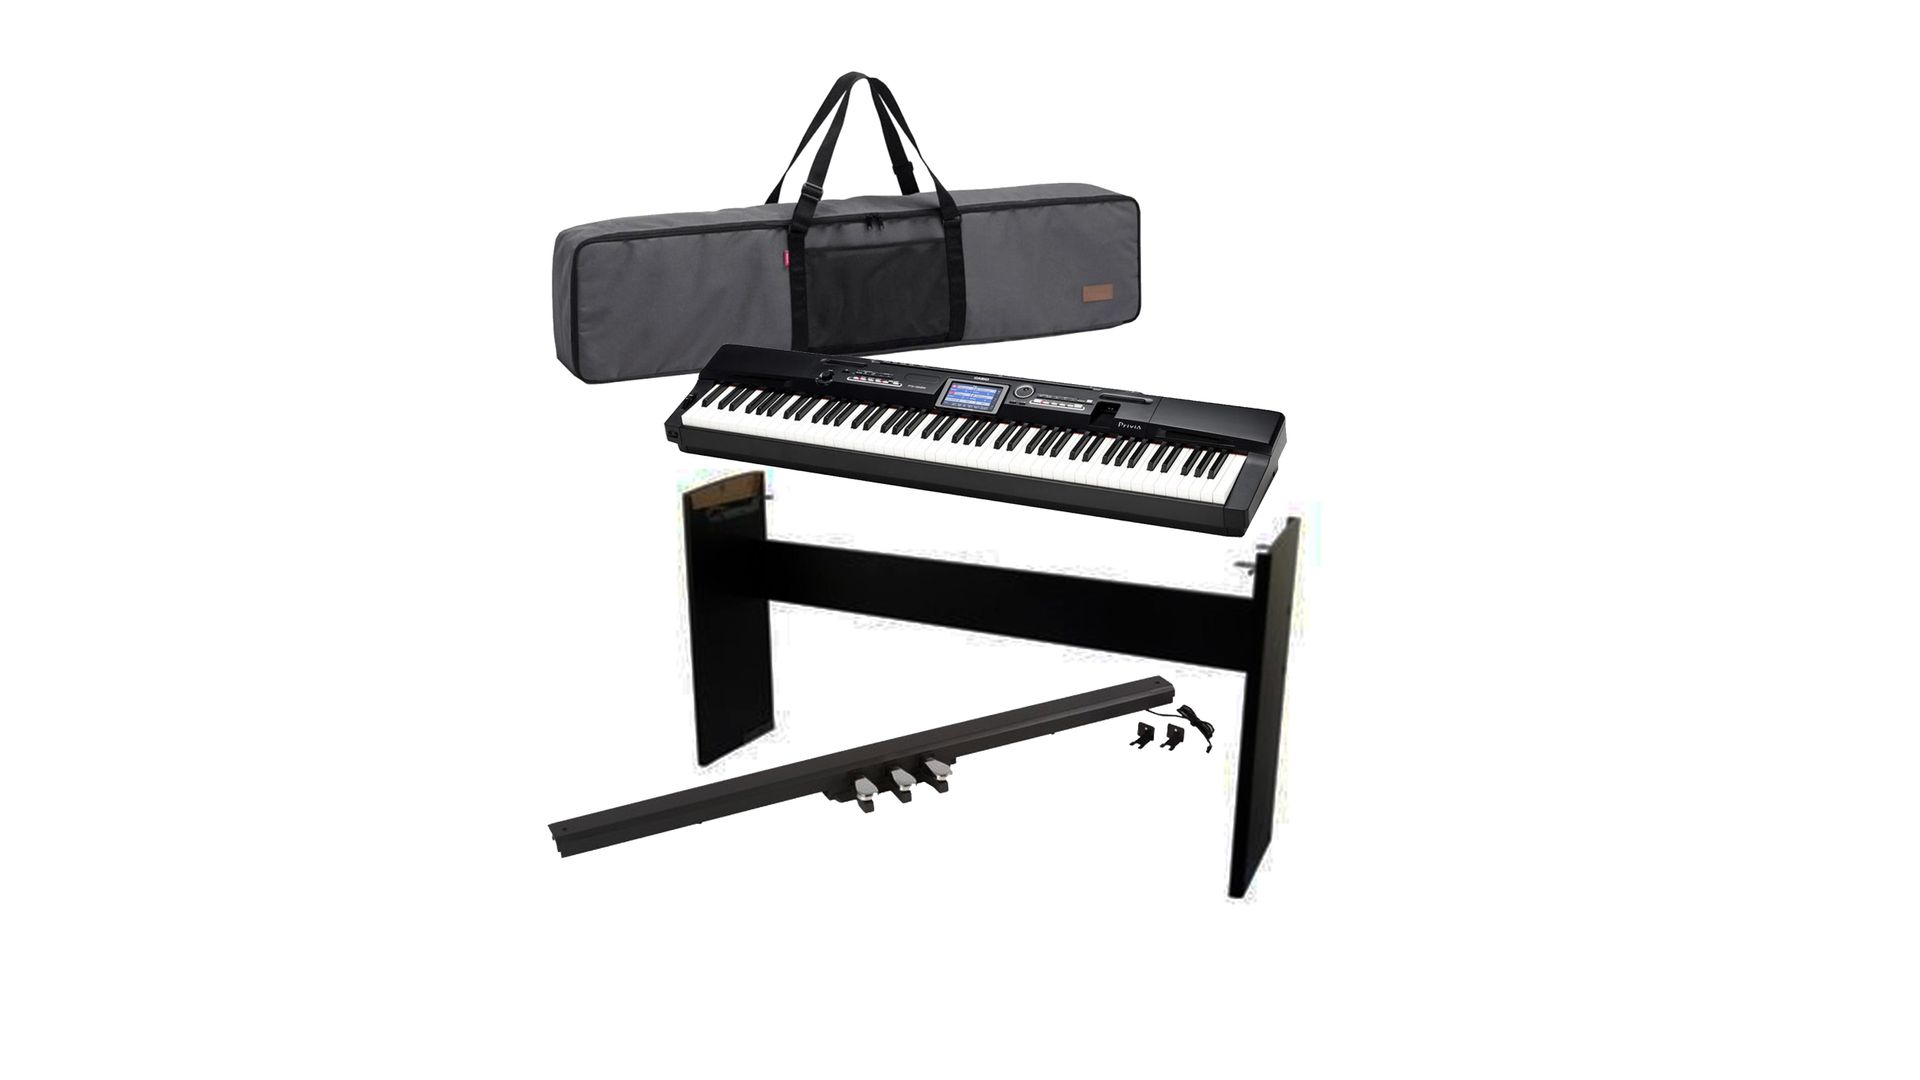 3e5a011a8a1 PIANO DIGITAL CASIO PX-360MBK PRIVIA 88 TECLAS   Estante Casio CS67 ...